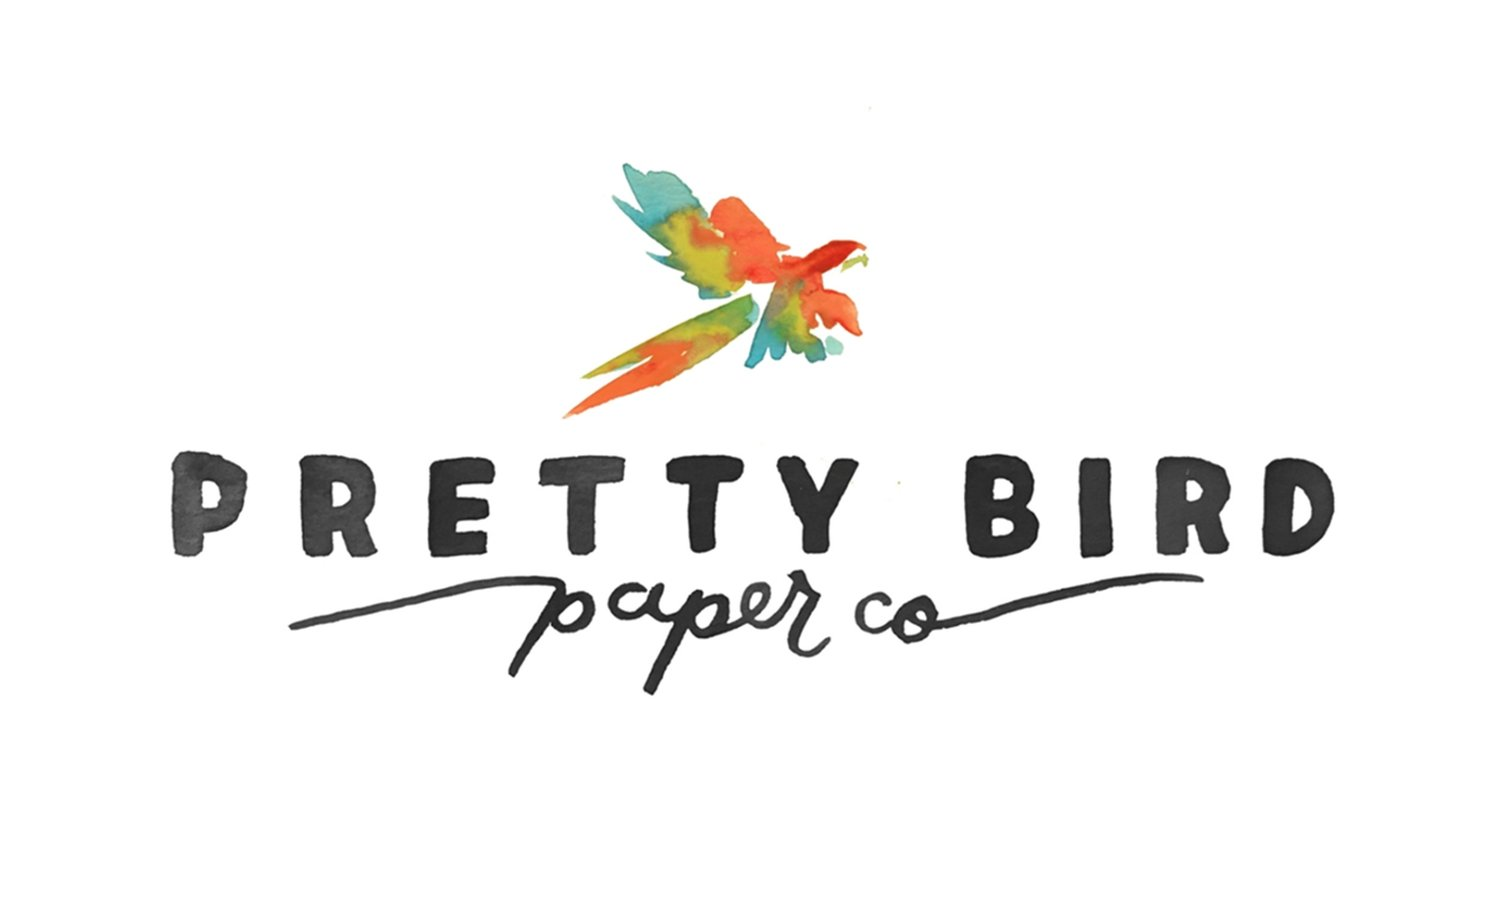 pretty bird paper co.